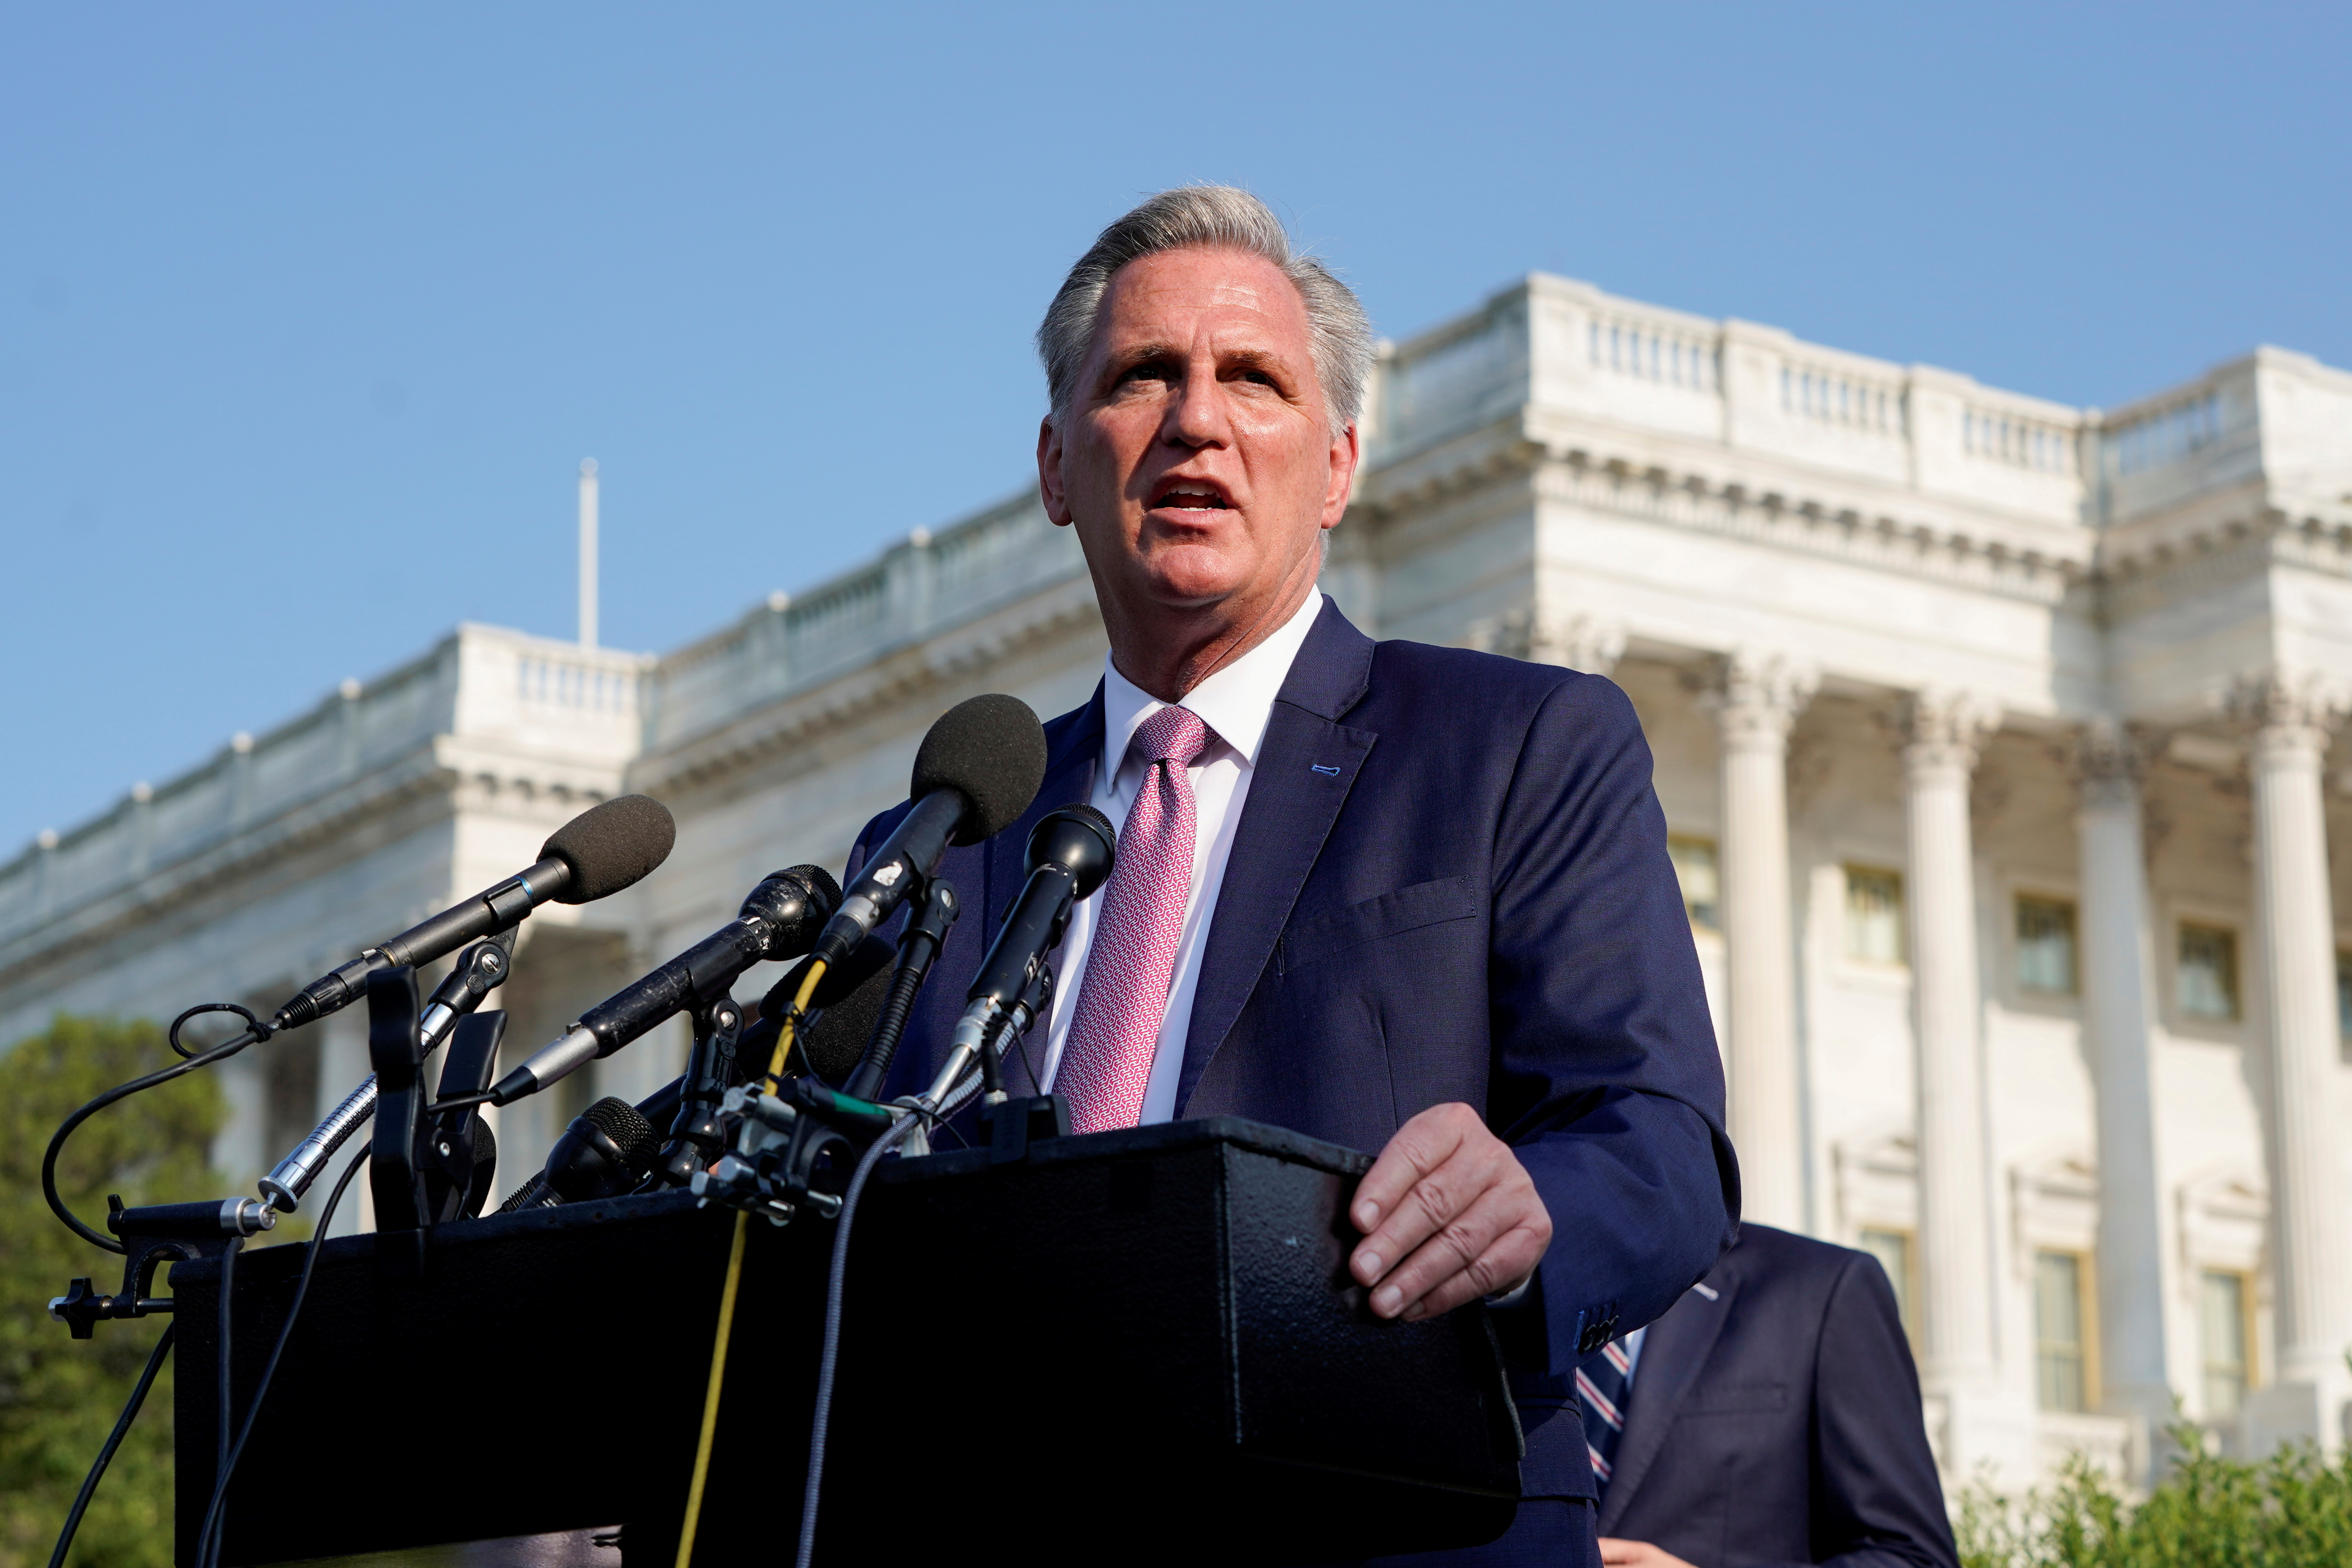 House Minority Leader Kevin McCarthy (R-CA)  speaks to the media with members of the House Republican caucus before the opening hearing of the House (Select) Committee on the Investigation of the January 6th Attack on the U.S. Capitol, on Capitol Hill in Washington, U.S., July 27, 2021.  REUTERS/Joshua Roberts/File Photo